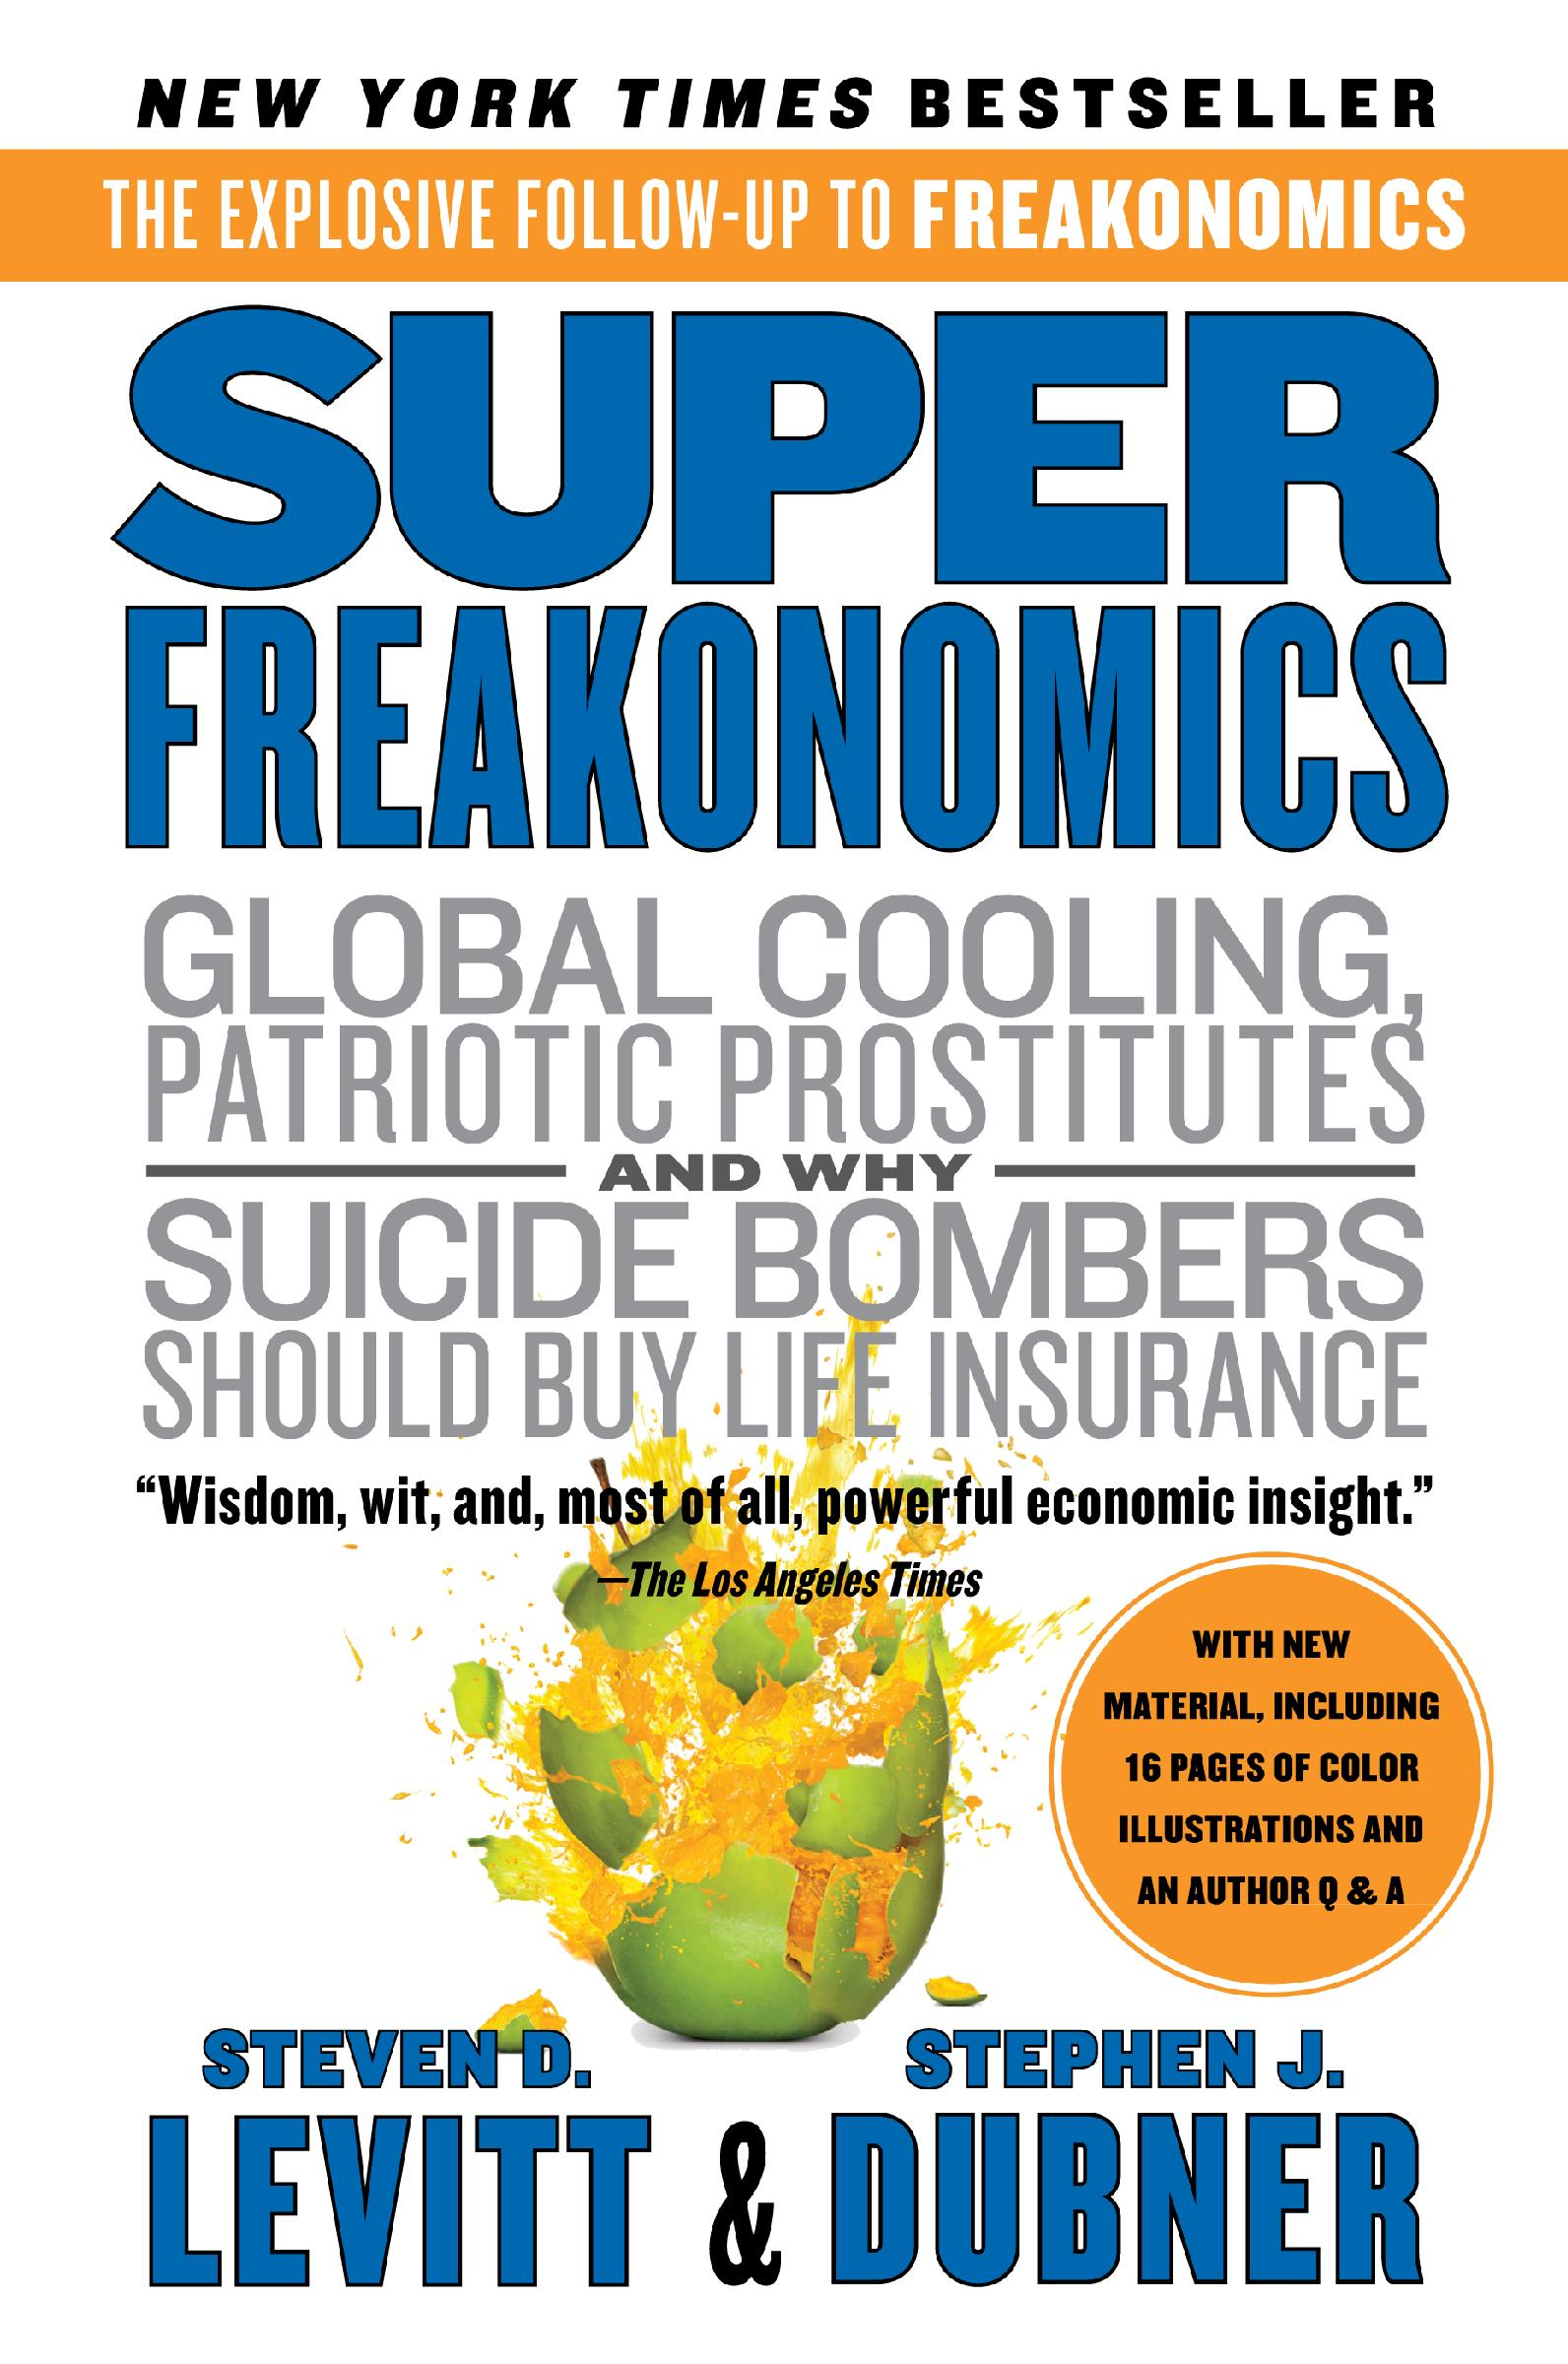 an analysis of freakonomics Freakonomics isn't really about any one thing, which makes it a bit hard to summarize in essence, it's economist steven levitt playing around with economic principles and basic statistical analysis to examine various cultural trends and phenomena.